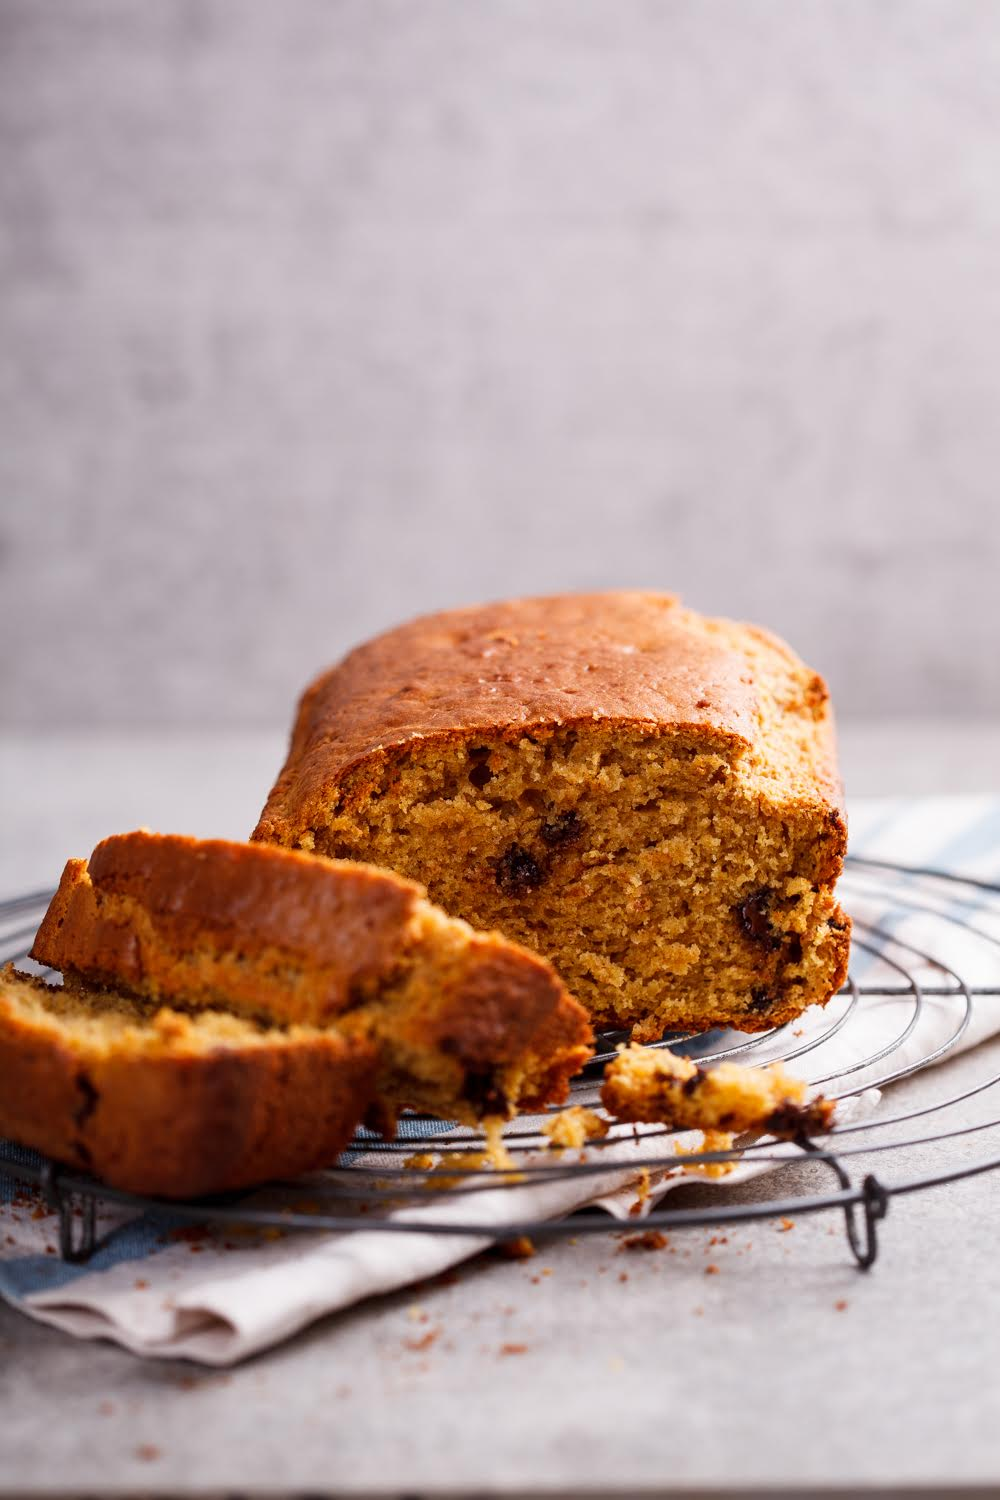 CHOCOLATE CHIP SPICED PUMPKIN BREAD